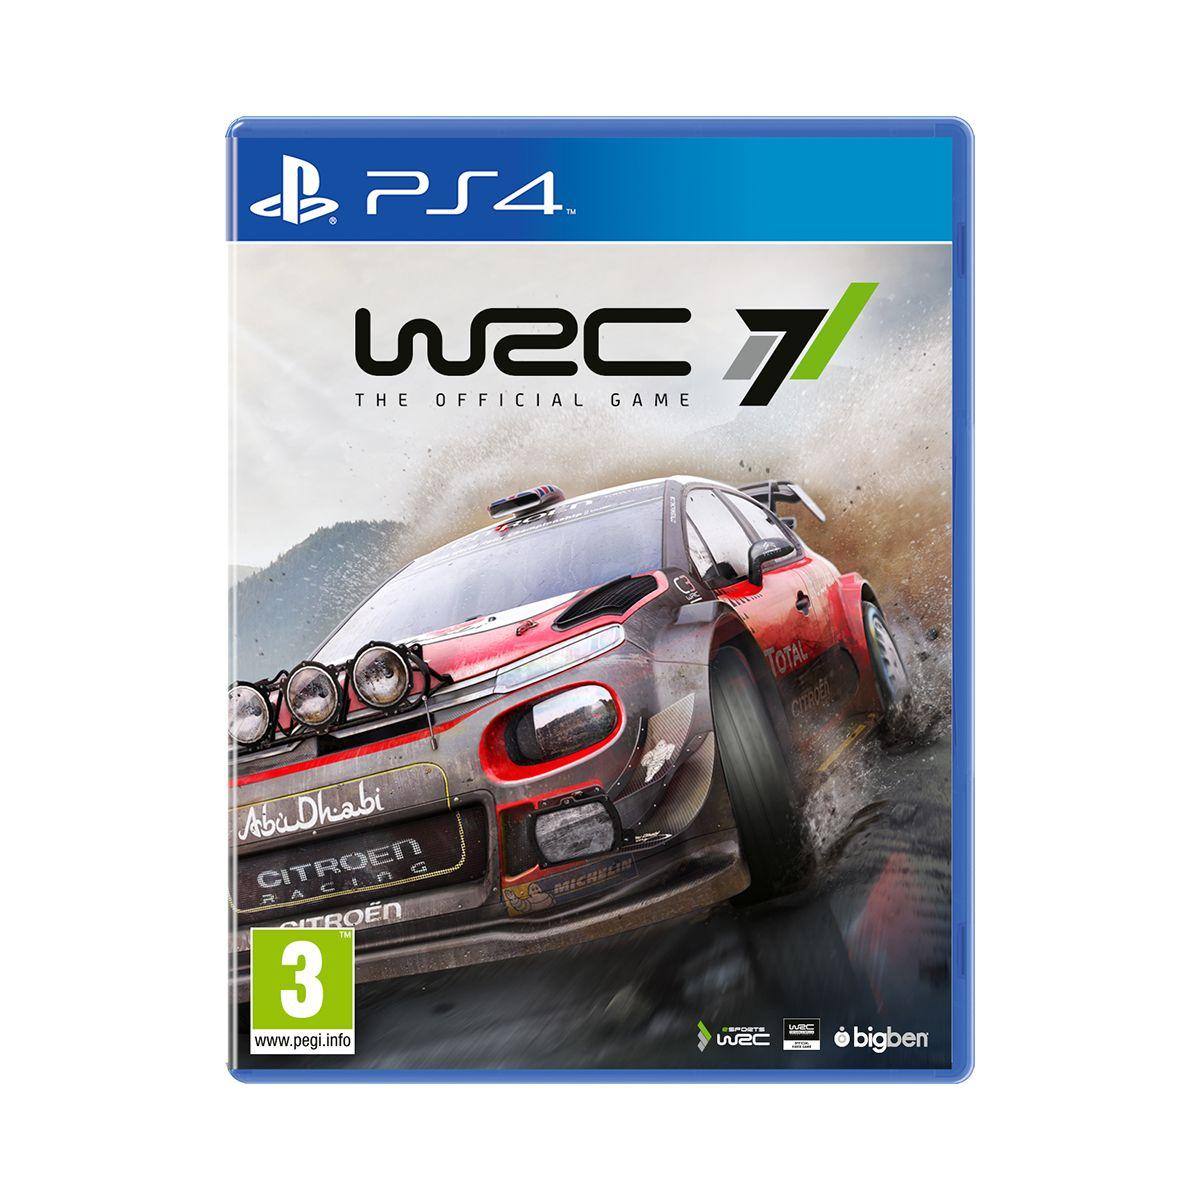 Jeu ps4 bigben wrc 7 (photo)